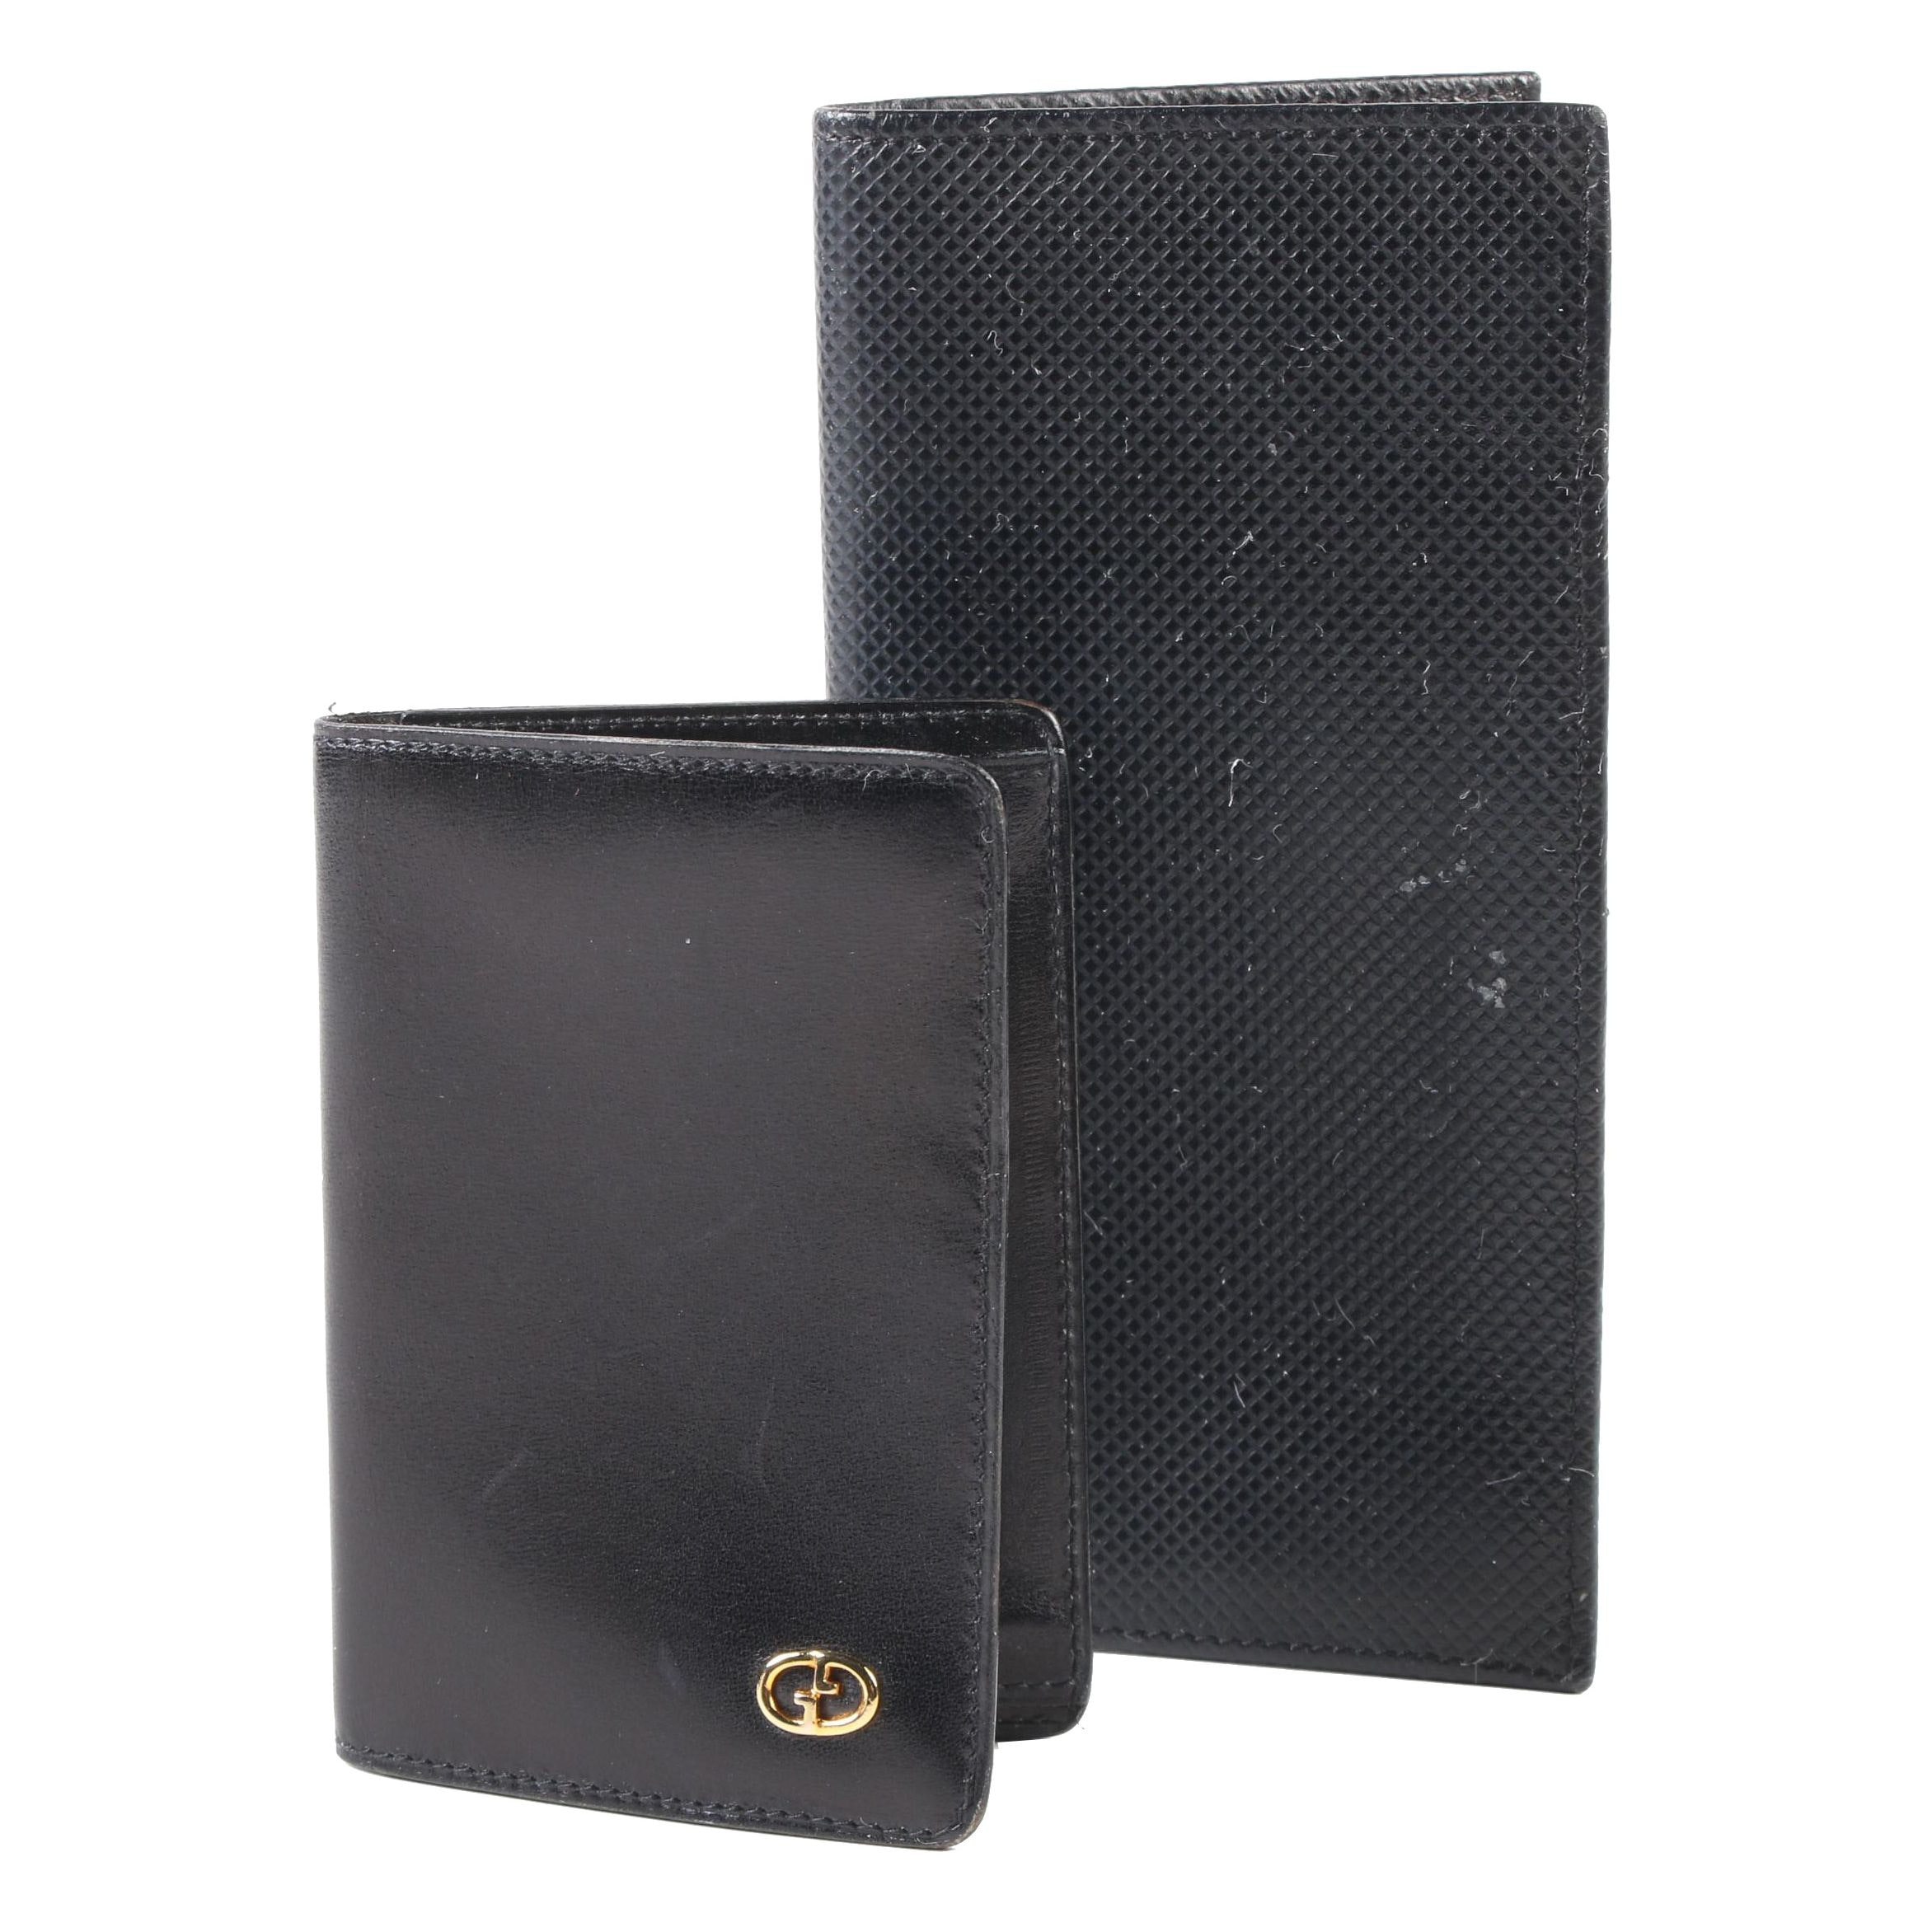 Gucci Card Case with Neiman Marcus Collection Bifold in Black Leather